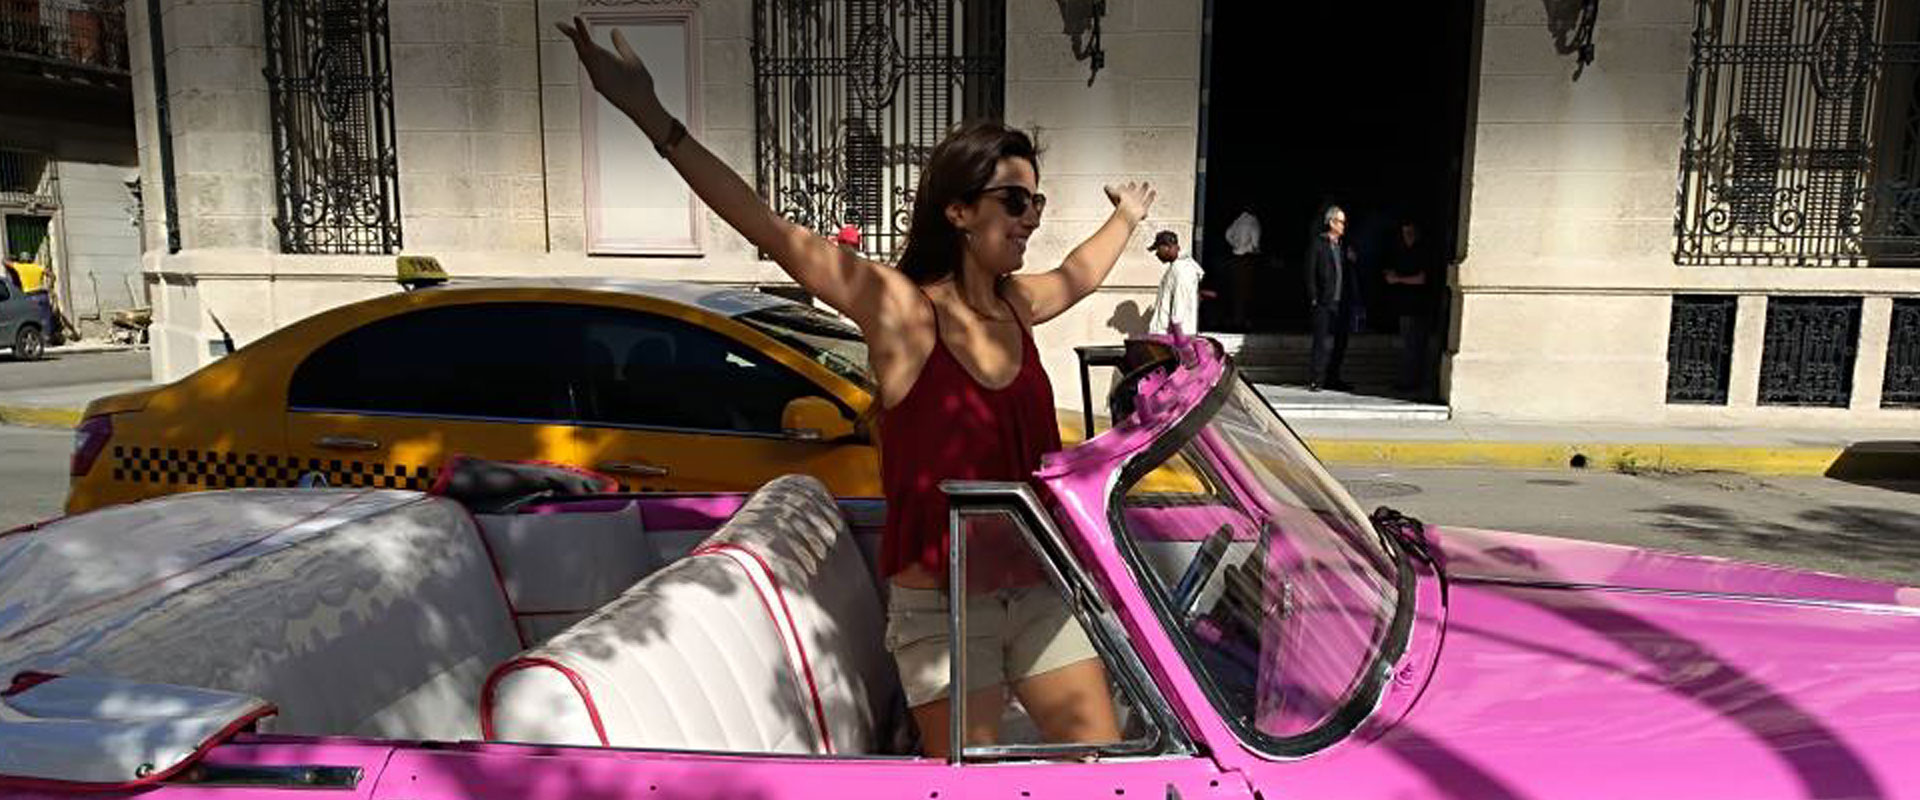 Trought Havana with Flamingo Havana Taxi